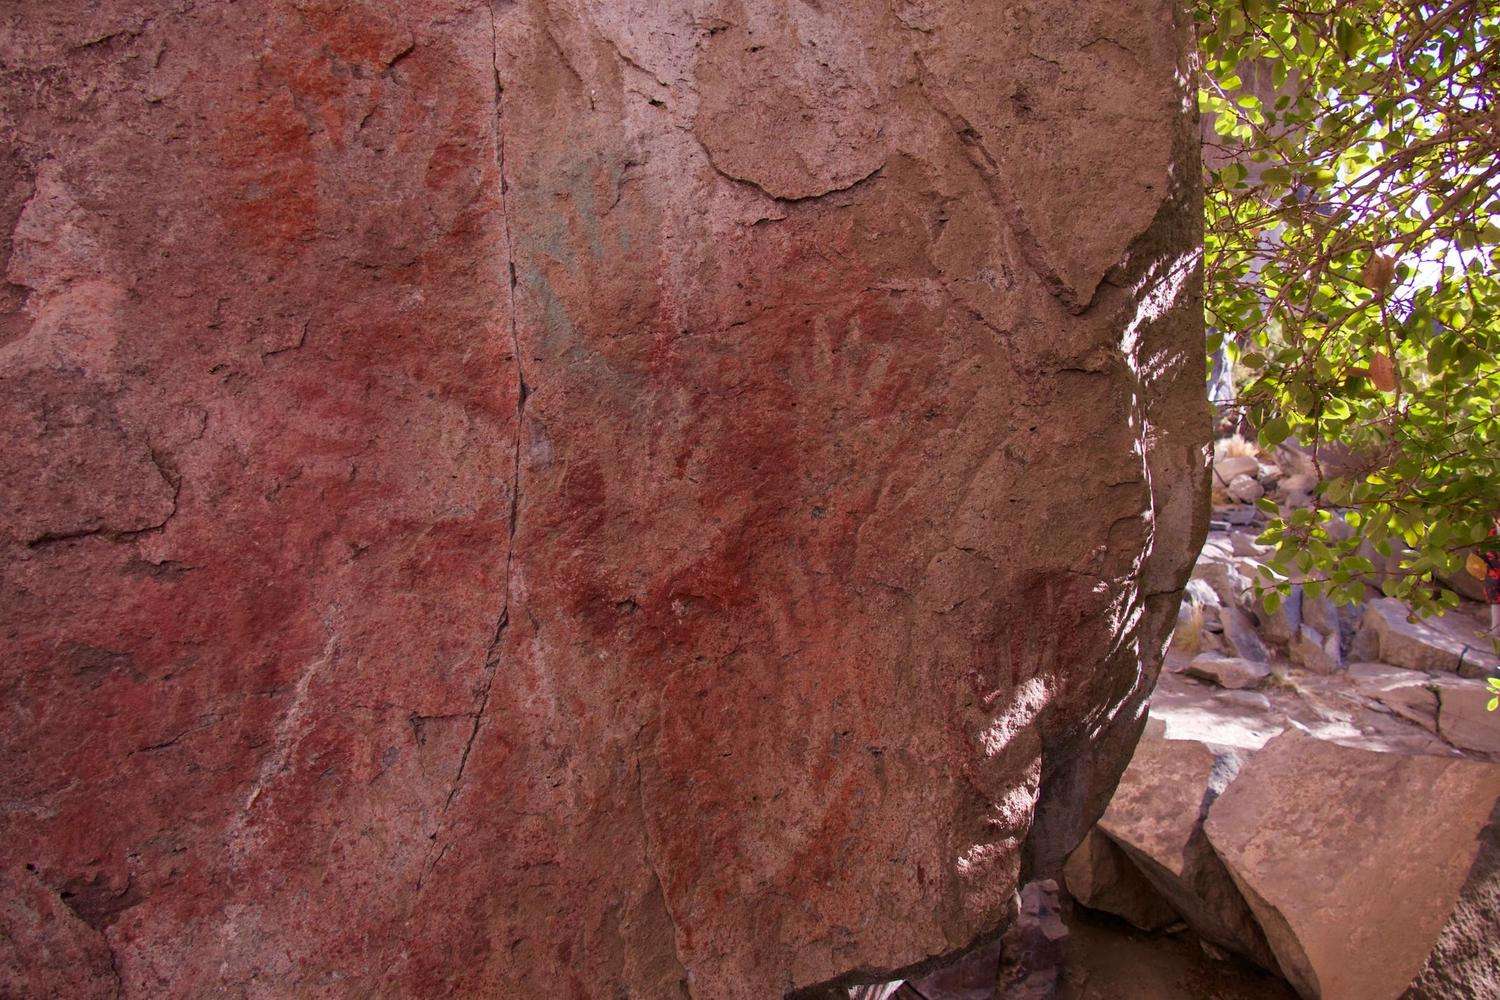 Ancient hand paintings near Cerro Castillo